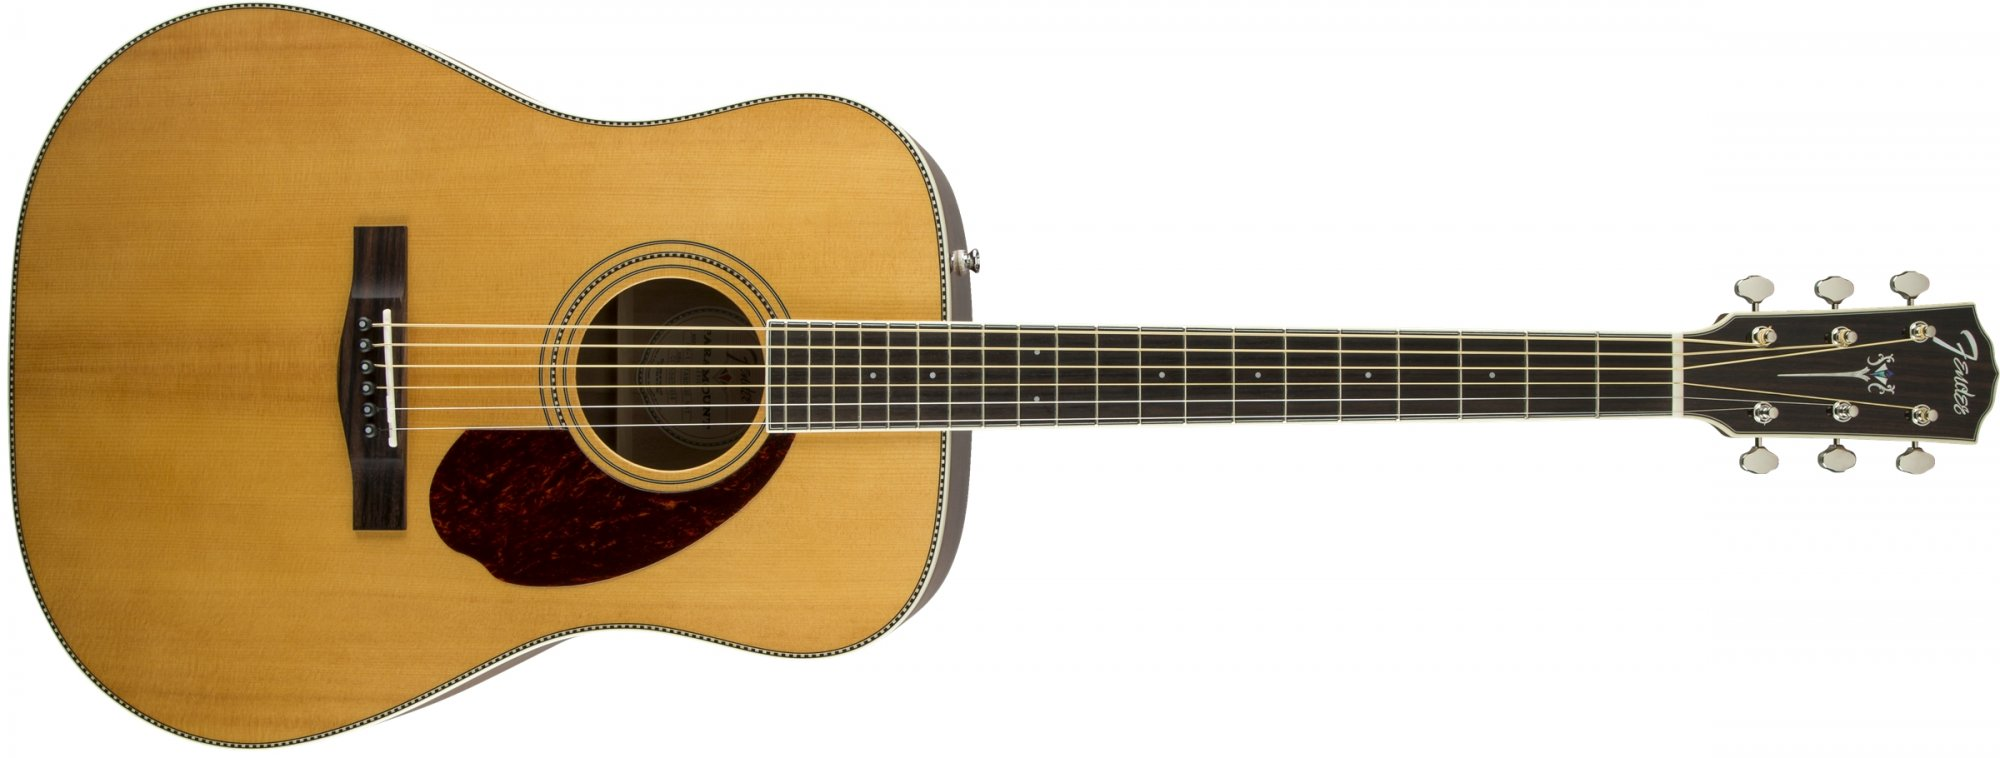 Fender PM-1 Paramount Standard Acoustic Electric Guitar Natural